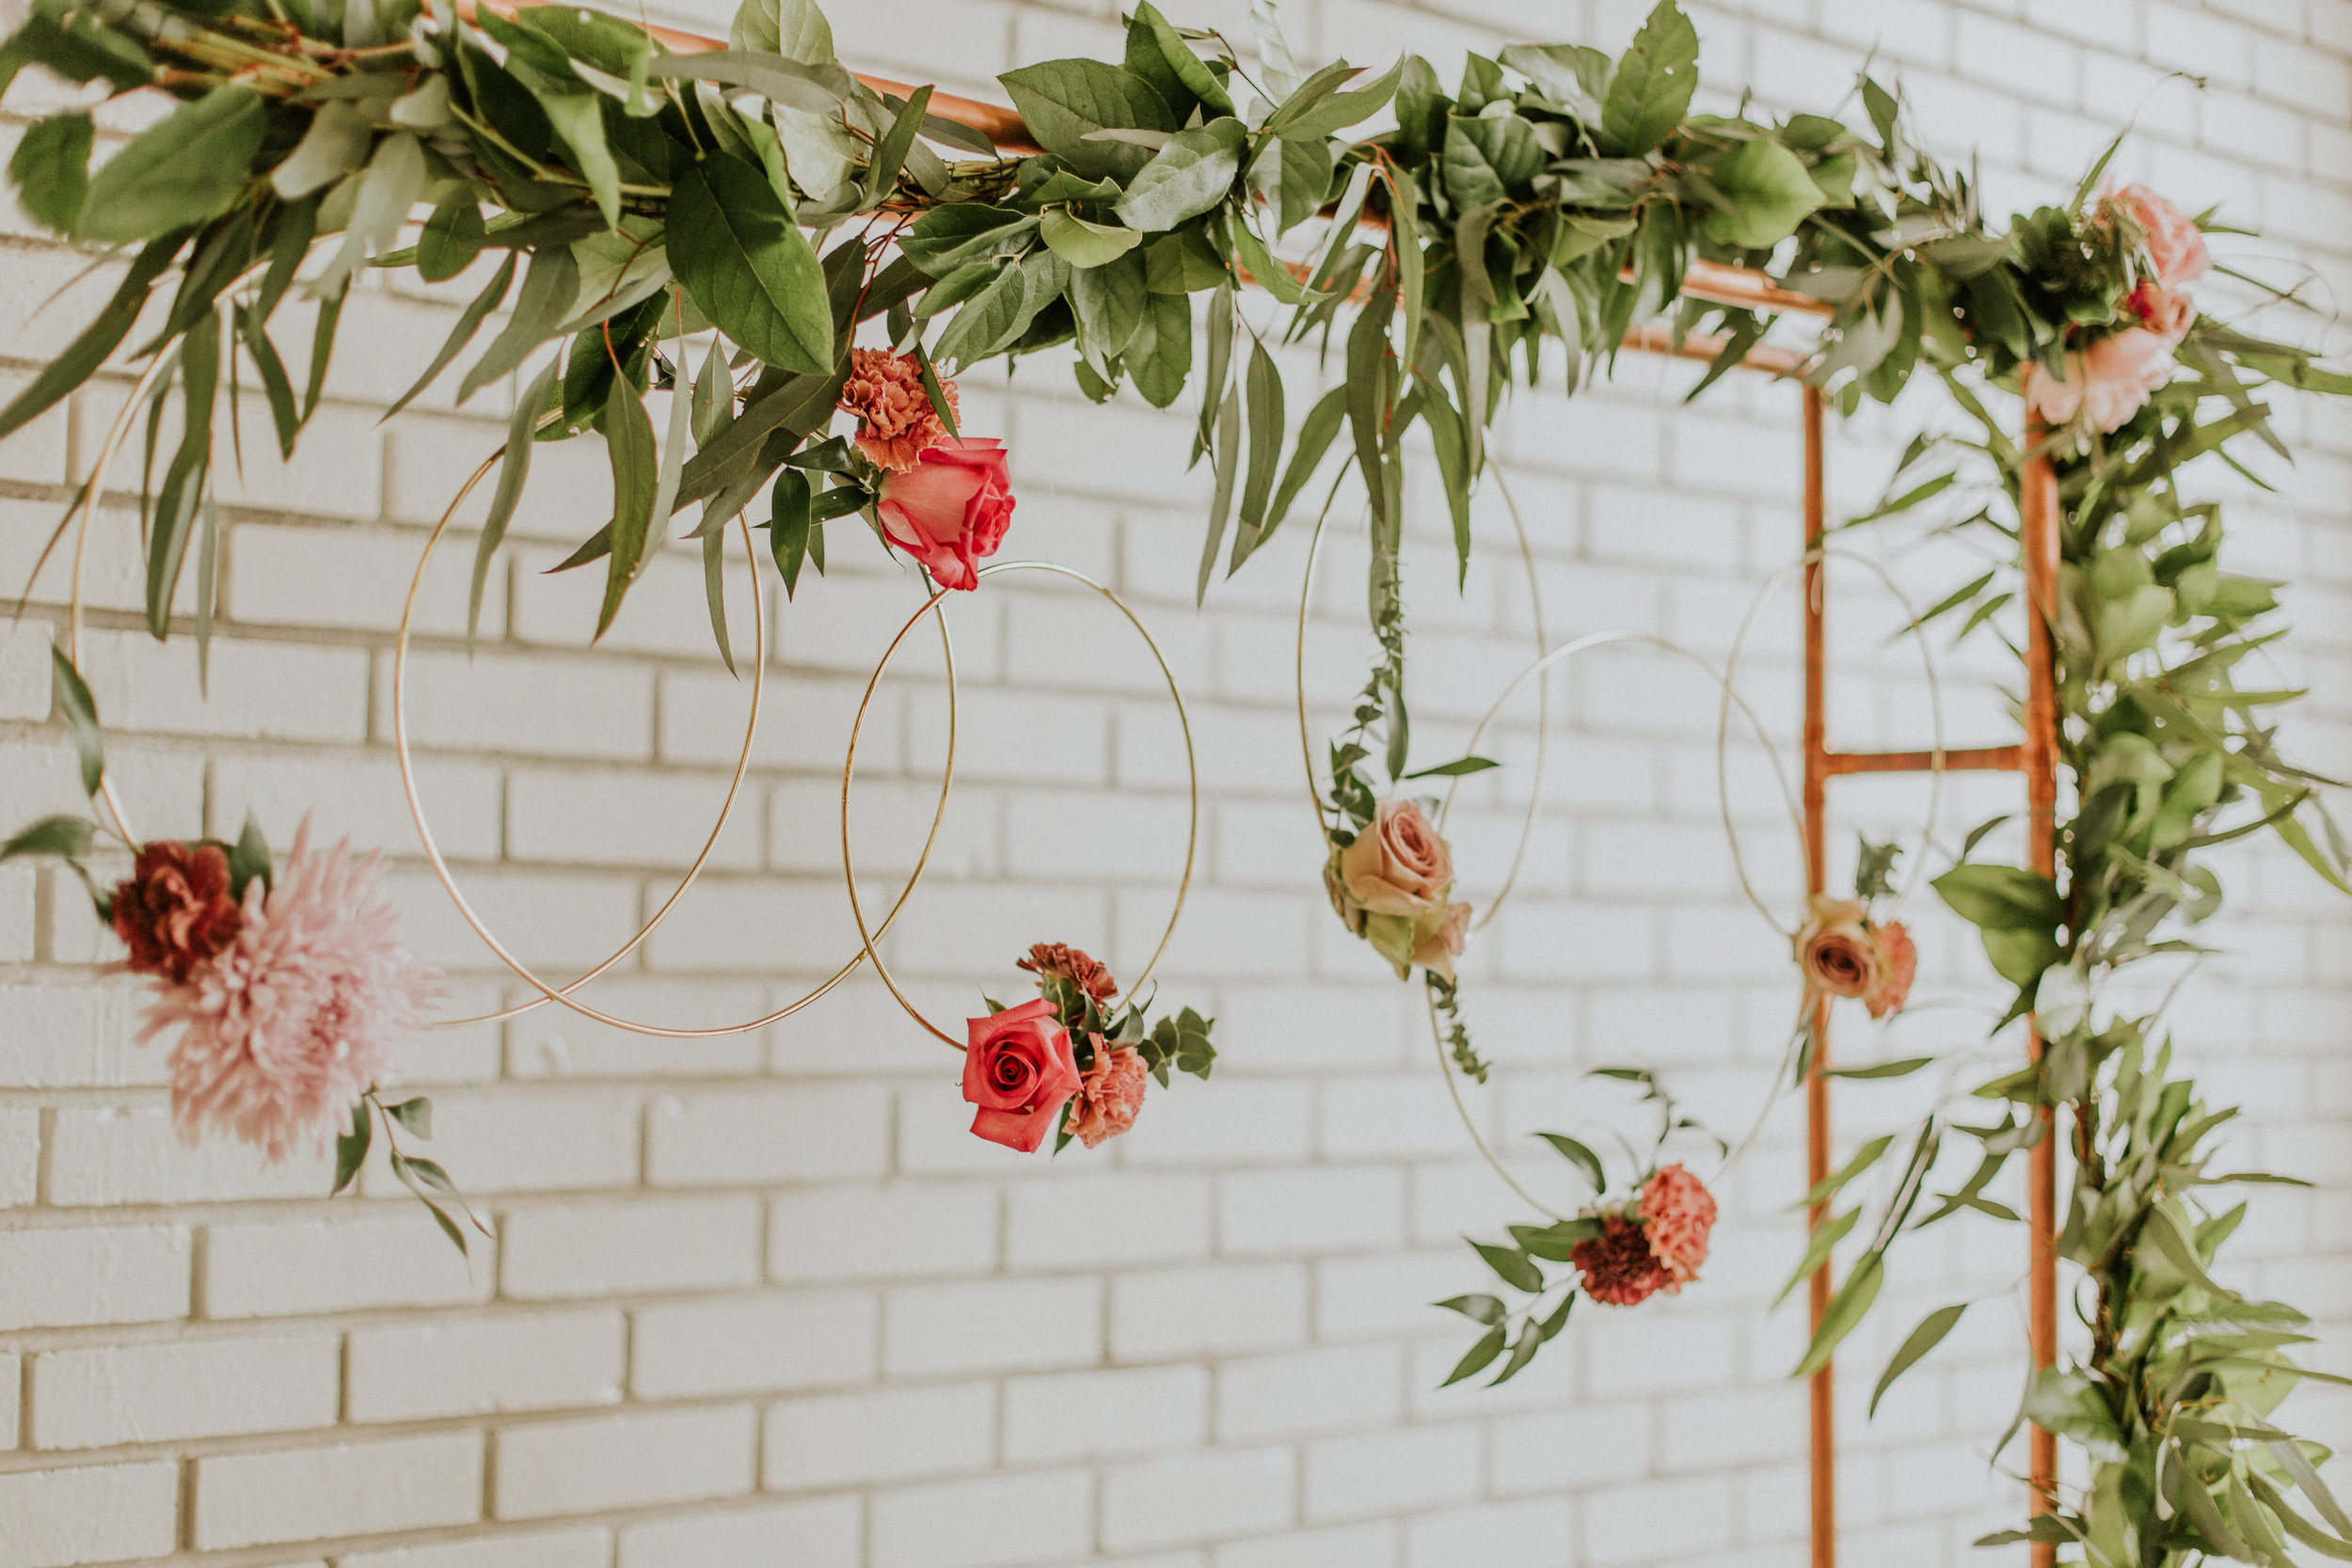 Dusty Rose Wedding Flowers and Ceremony Backdrop Ideas by Bartz Viviano Styled by Event Prep and Photographed by Adore Wedding Photography - As Seen In the Toledo Wedding Guide